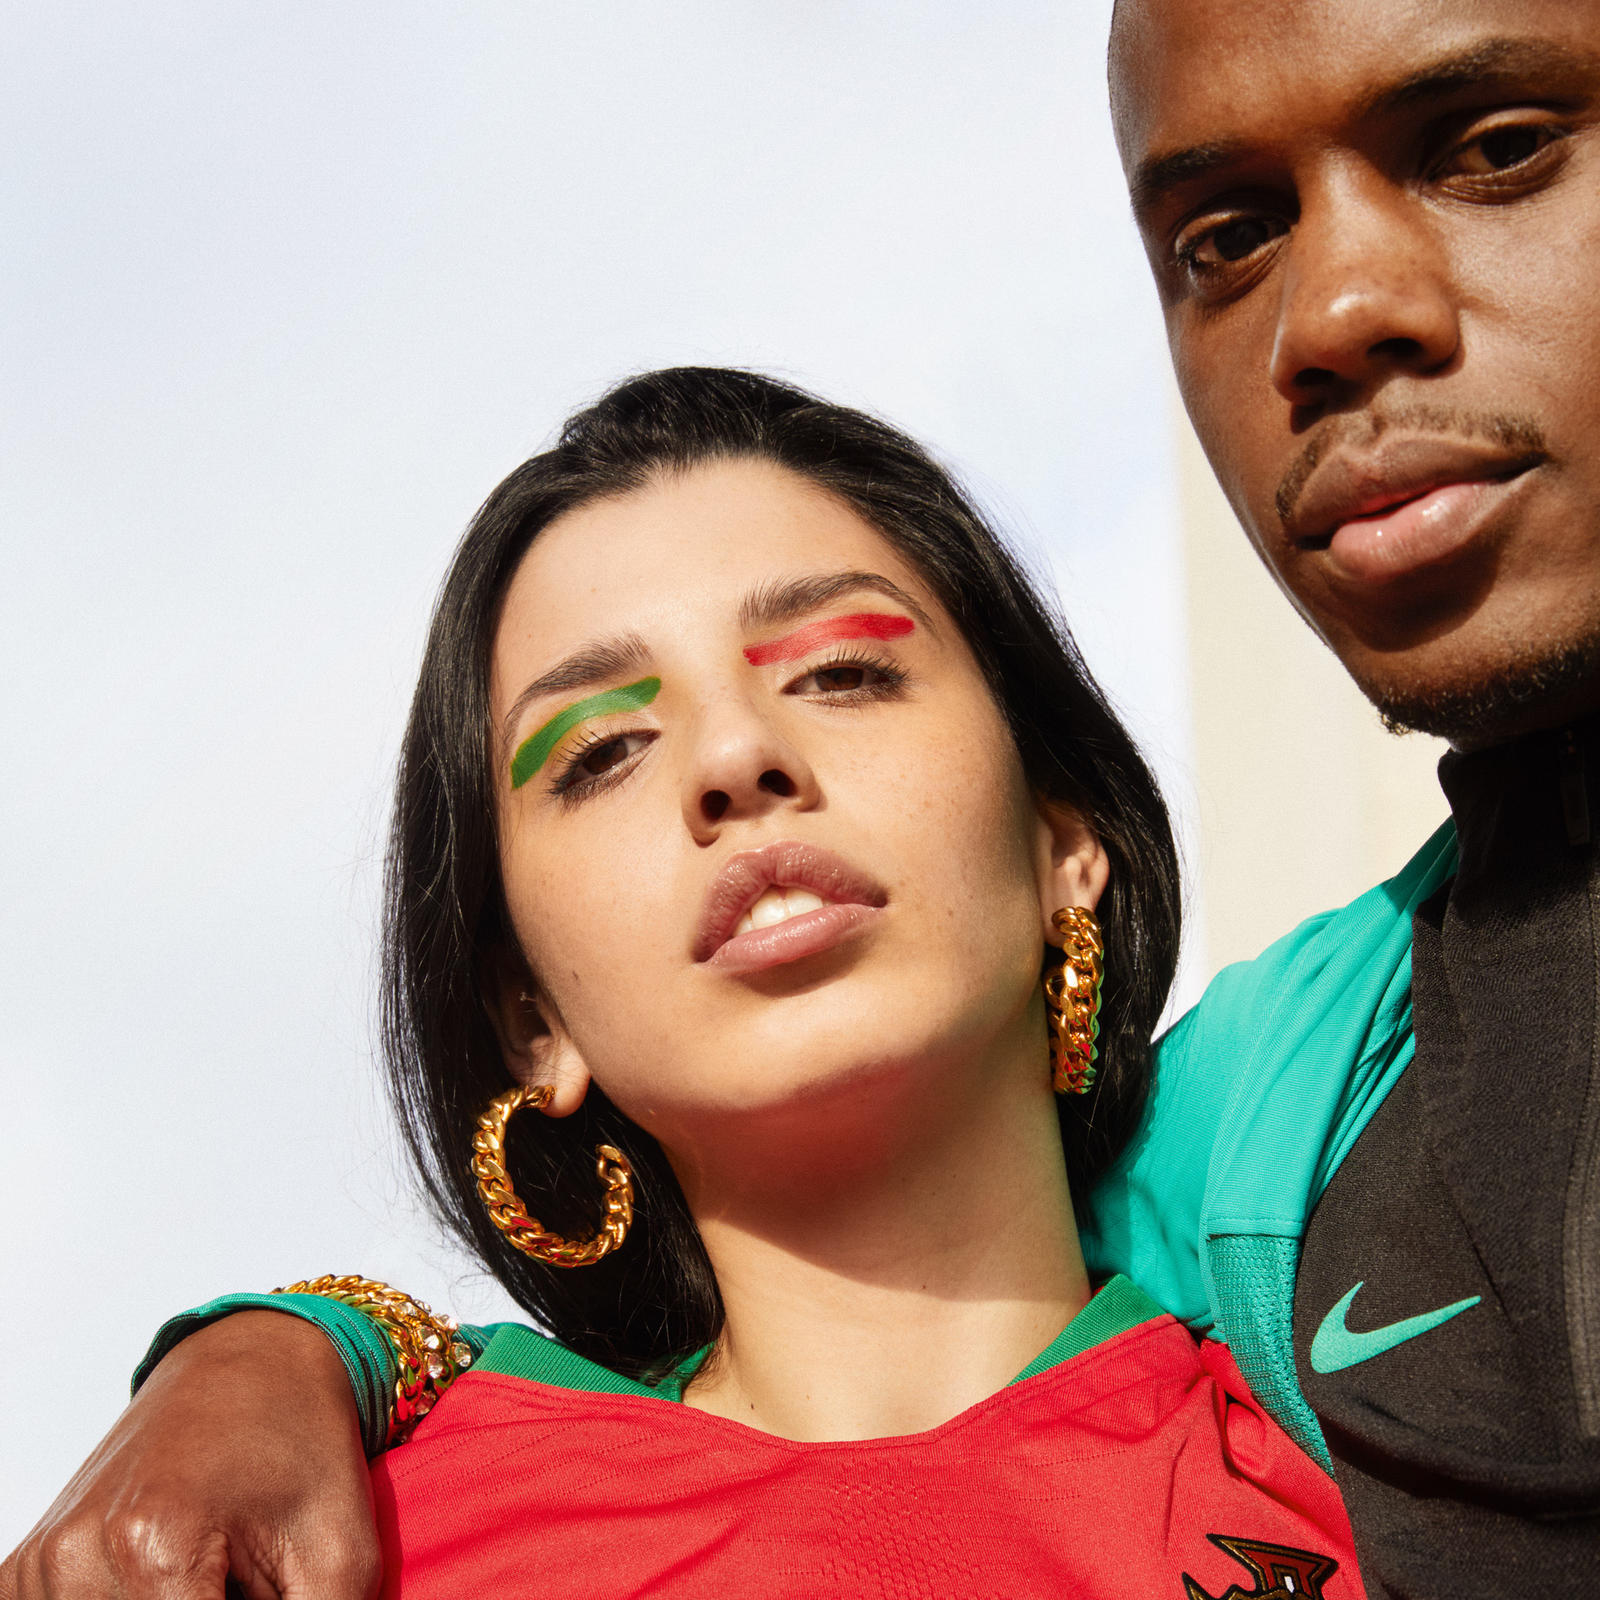 Hail Europe's Kings: Portugal's New Kits Flash Gold and Kinetic Green 10